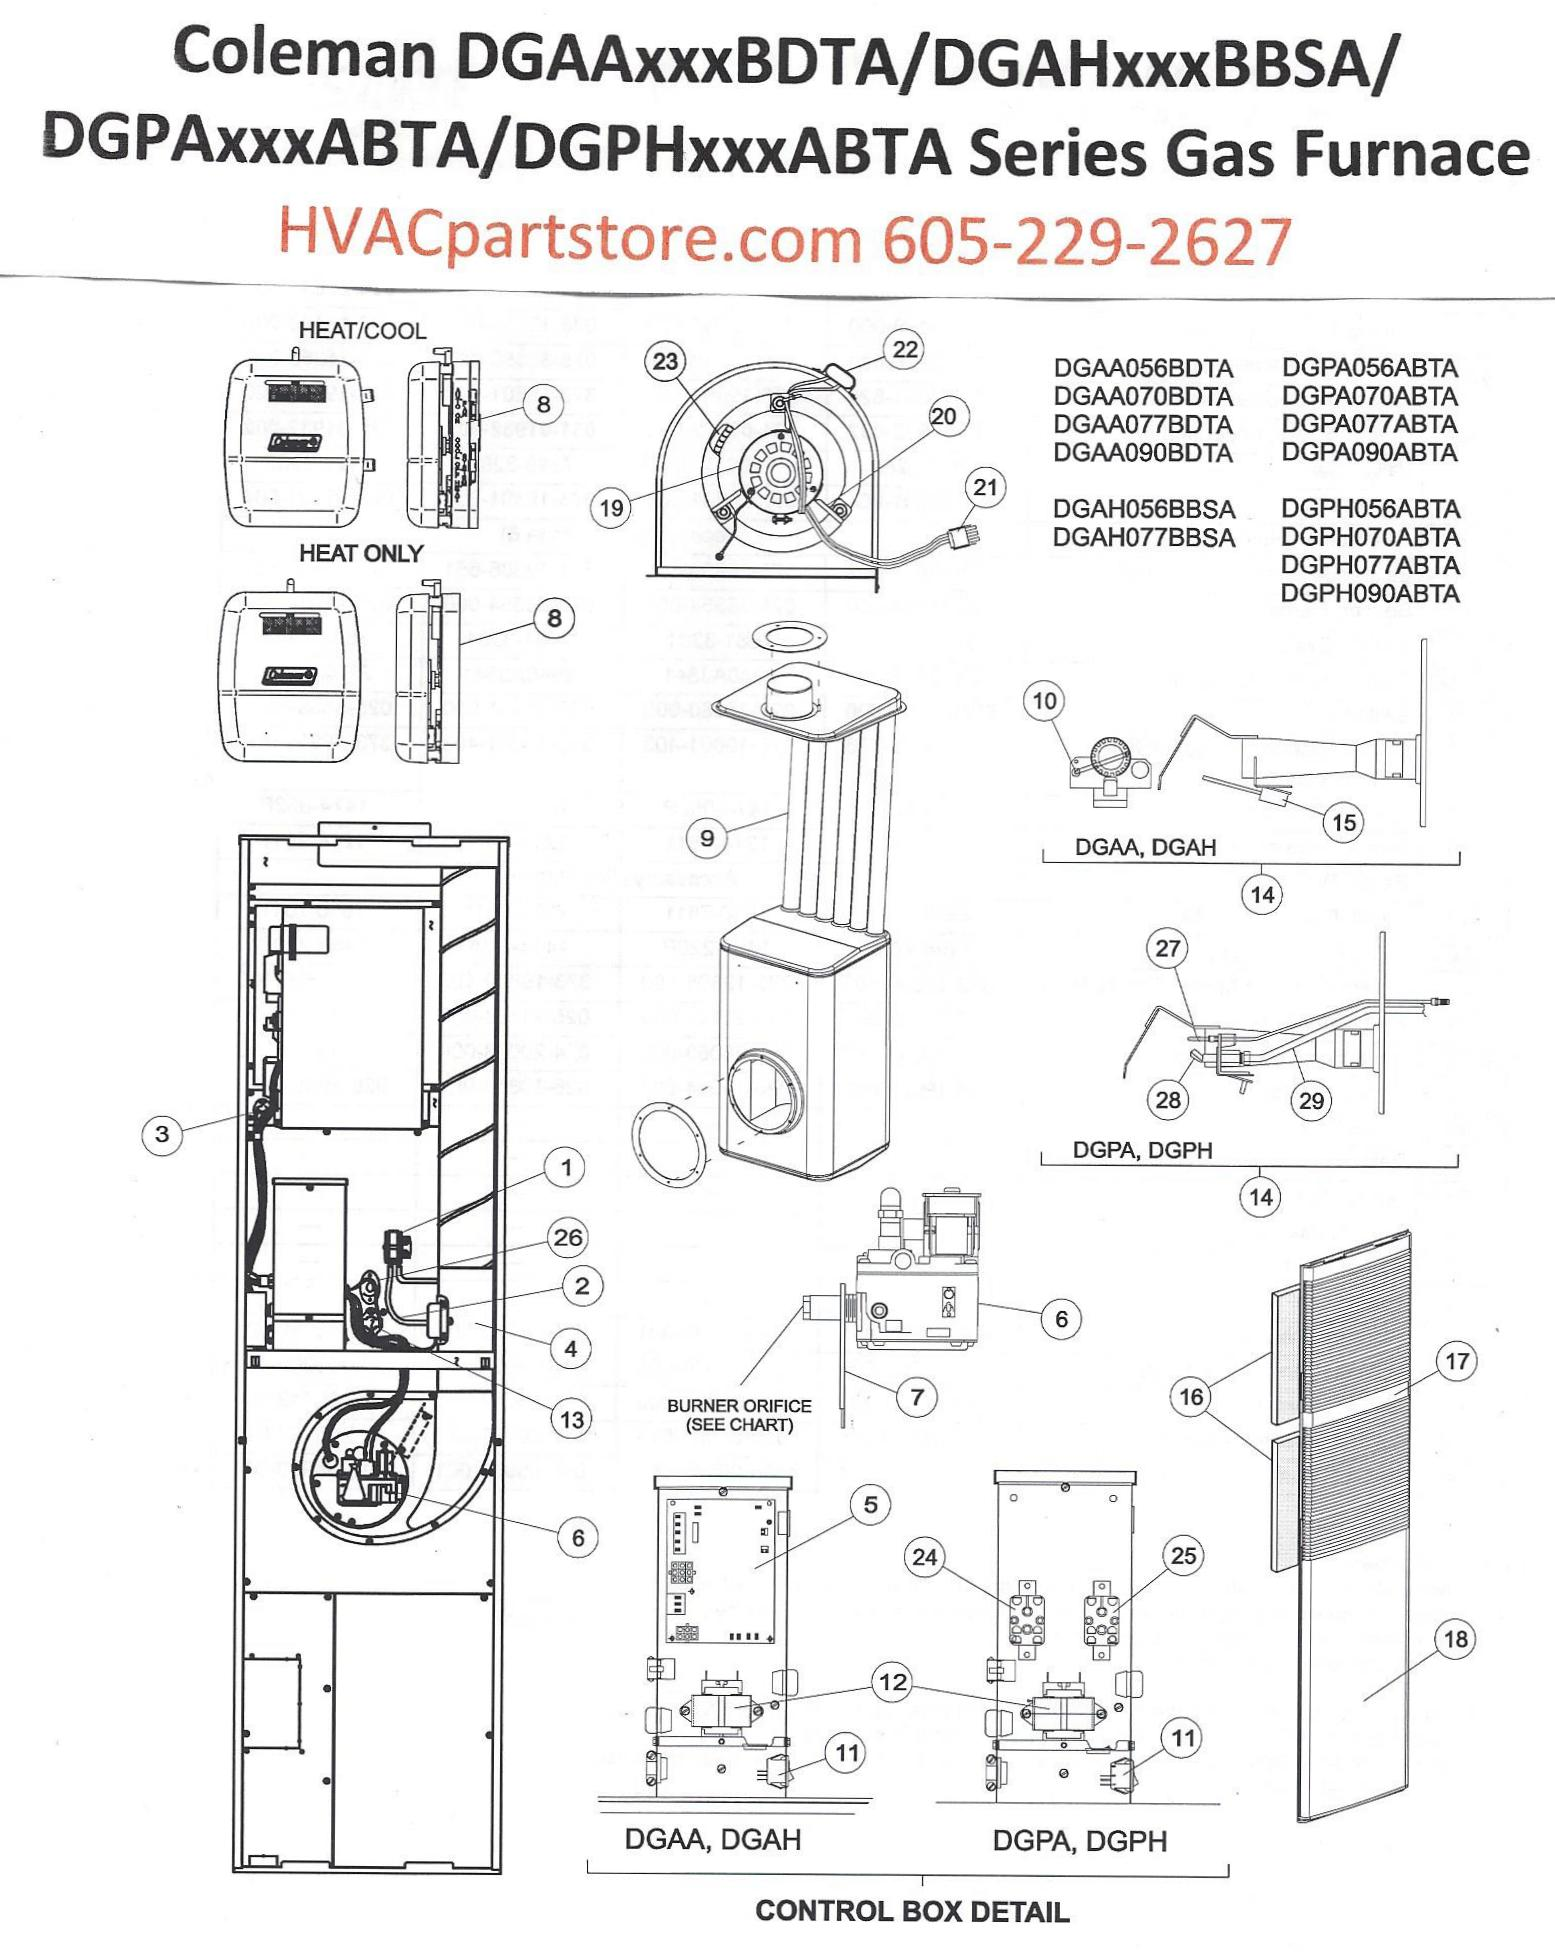 Dgph070abta Coleman Gas Furnace Parts Tagged 24vac Hvacpartstore Wiring Diagram Click Here To View A Manual For The Which Includes Diagrams